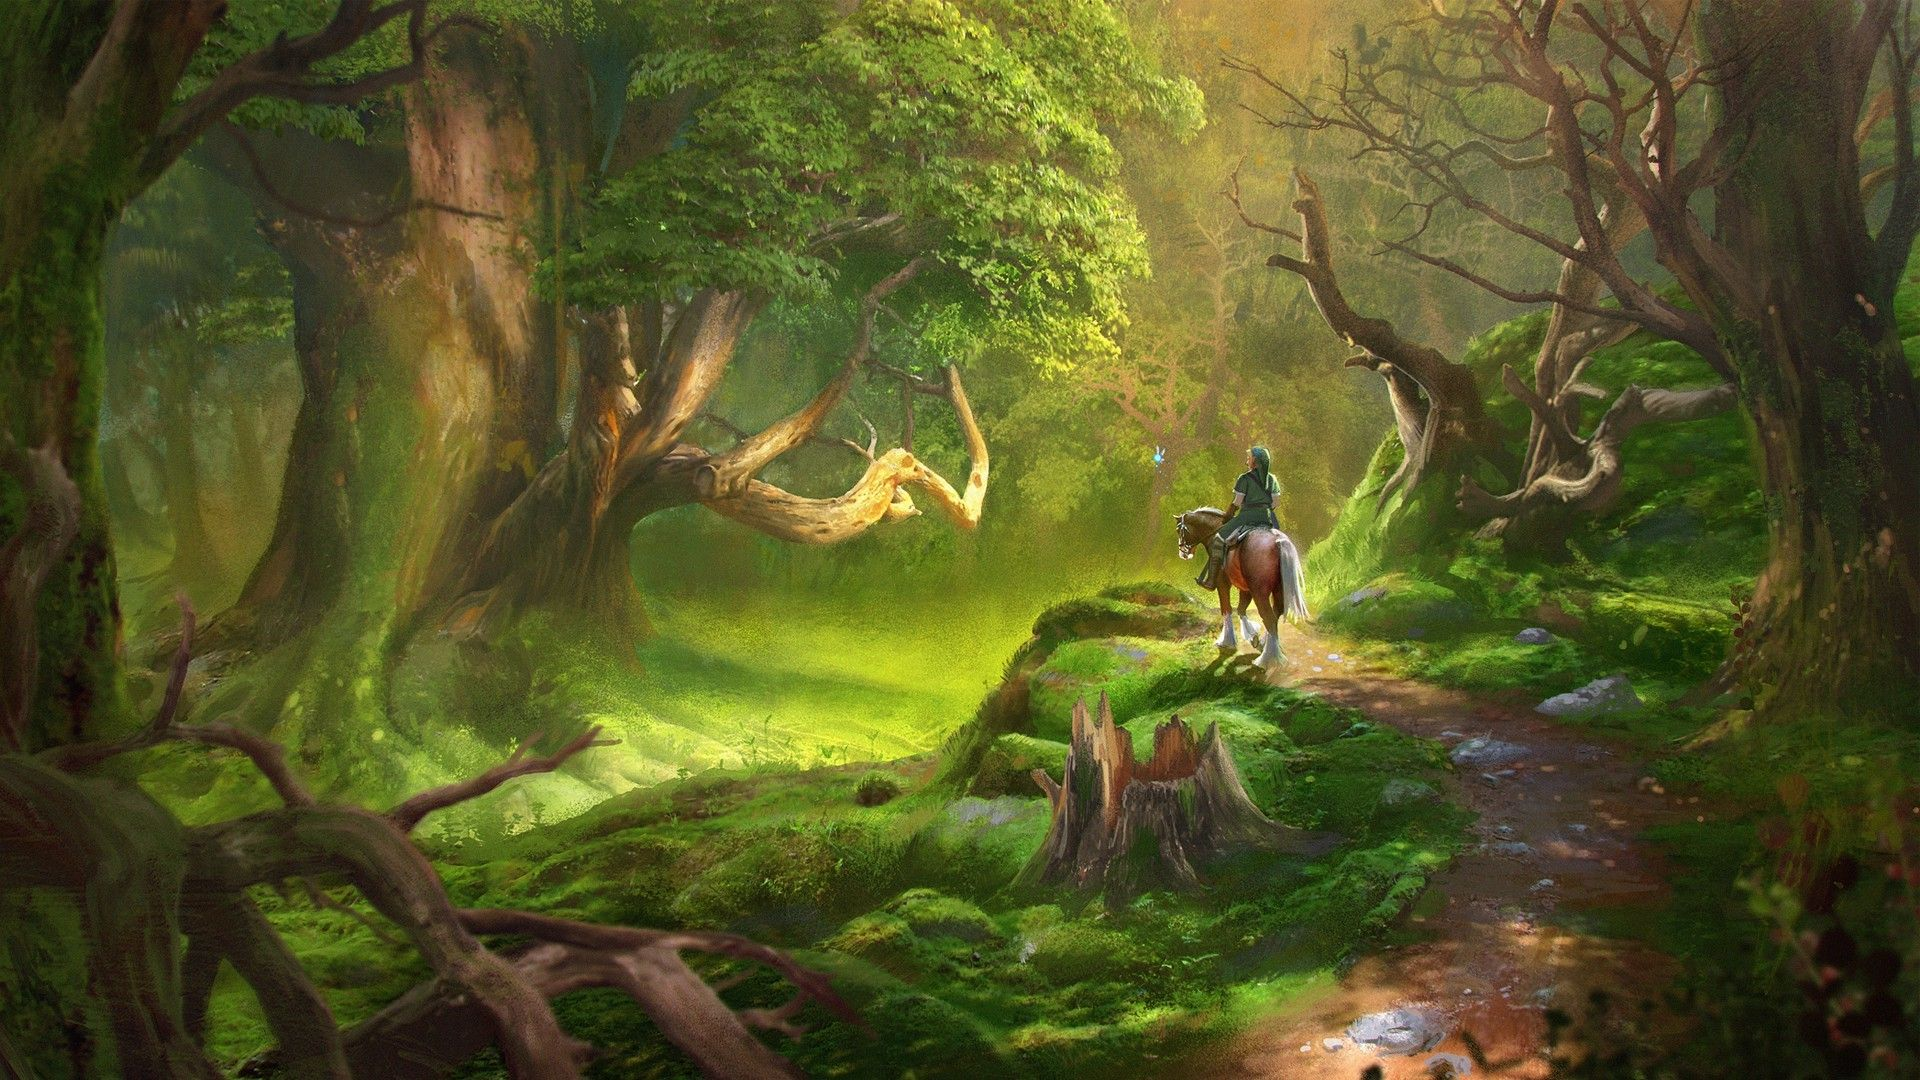 Download Hd Wallpapers Of 361797 Link Video Games The Legend Of Zelda Forest Free Download High Quality An In 2020 Legend Of Zelda Zelda Art Legend Of Zelda Breath